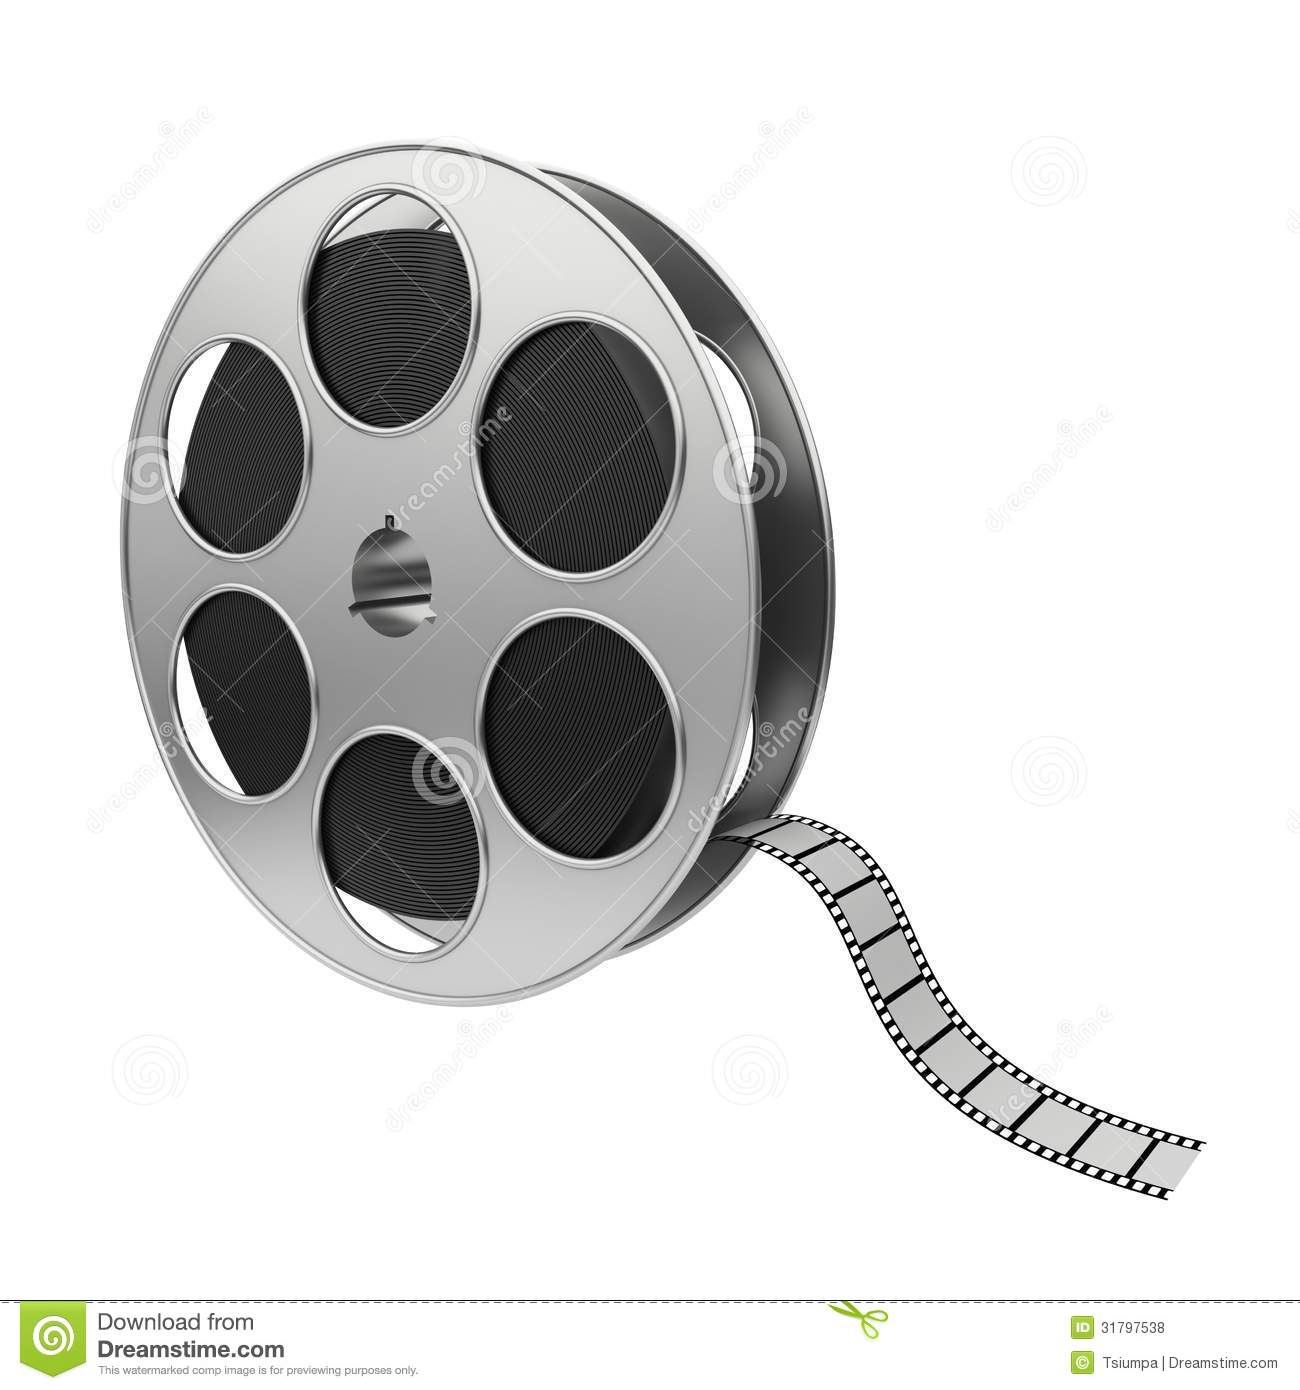 Film reel stock illustration. Illustration of objects ...